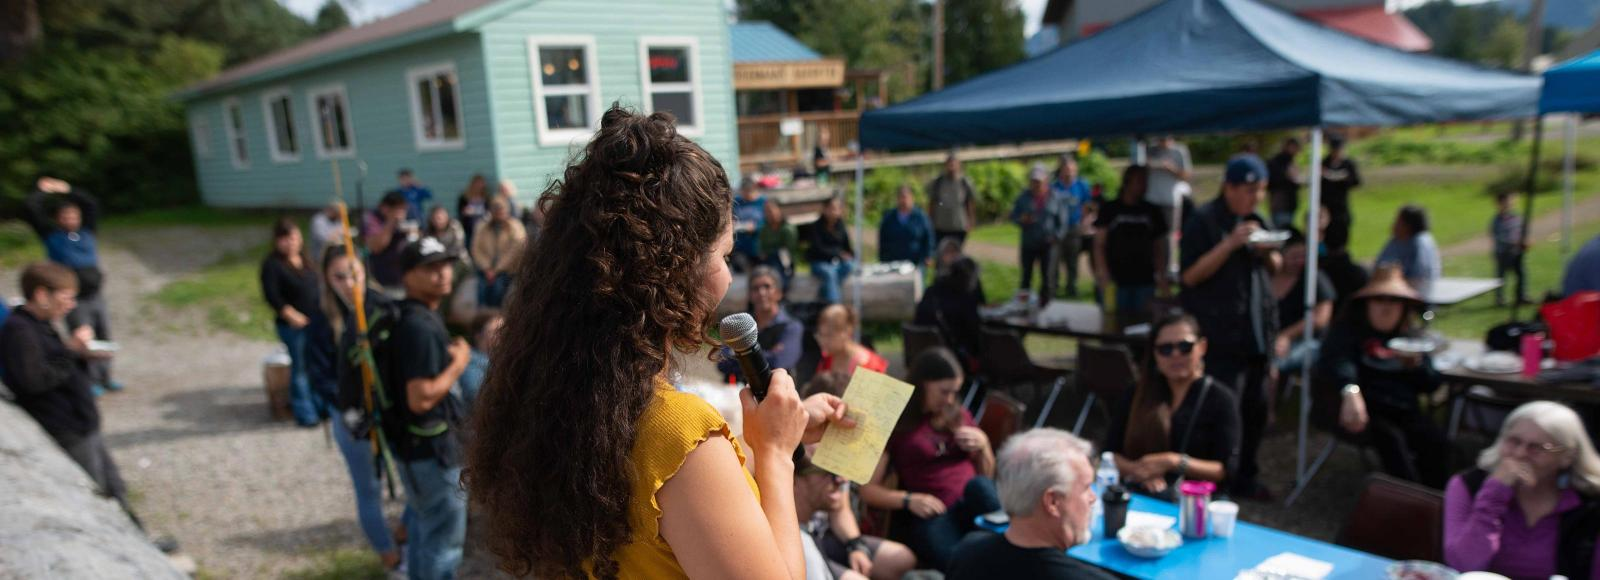 A young woman addresses a gathered community on a sunny day in SE Alaska.